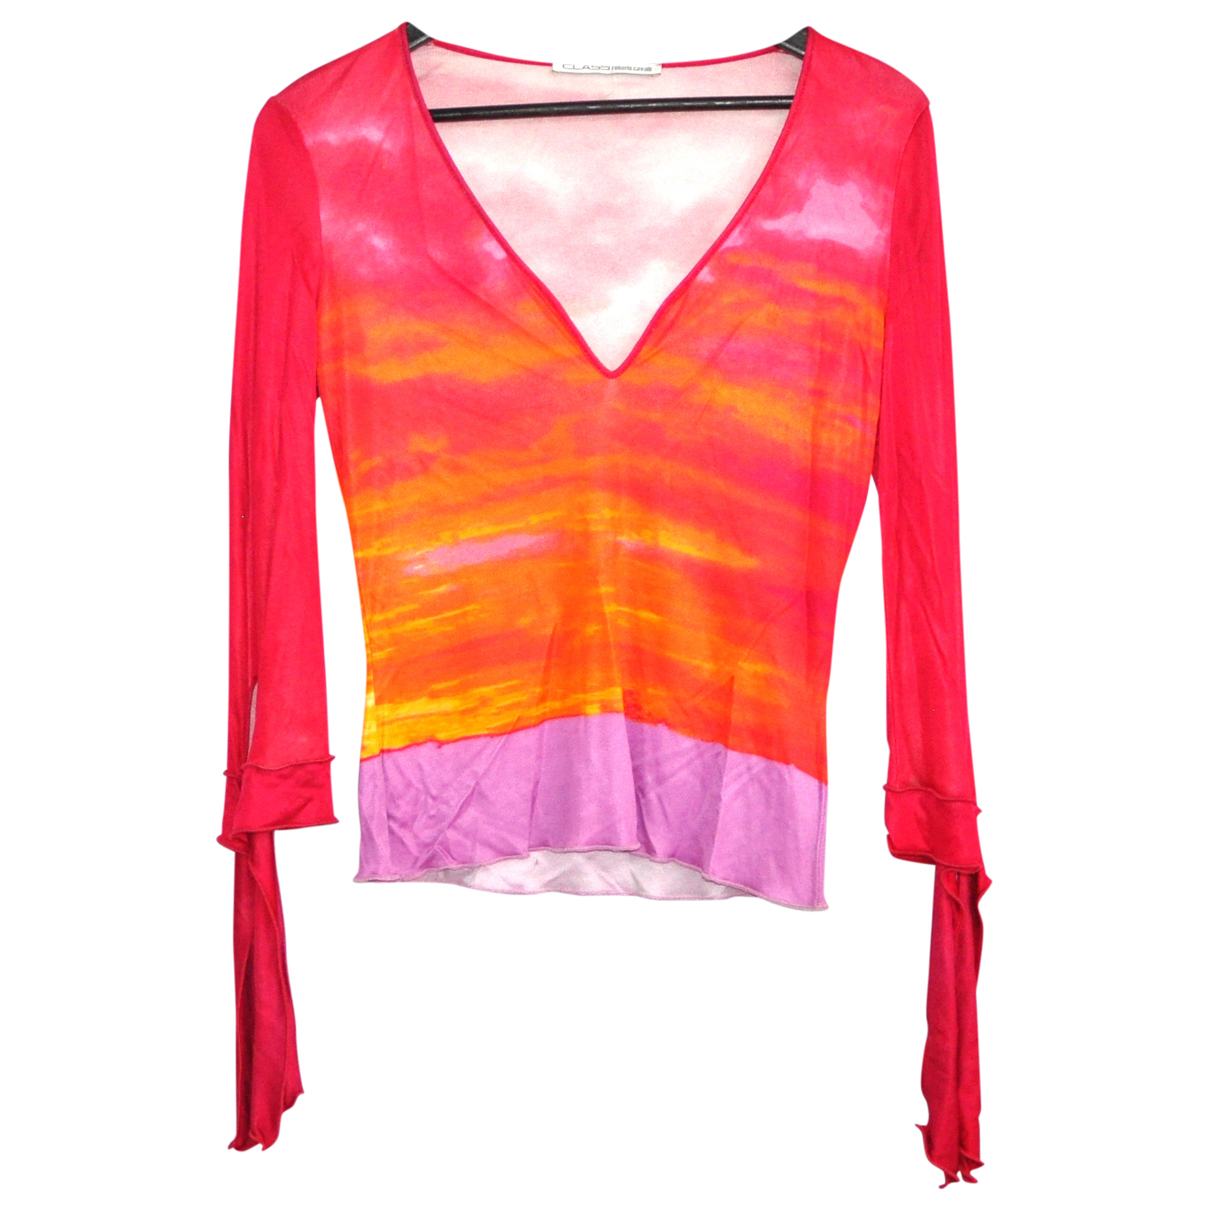 Roberto Cavalli \N  top for Women One Size FR